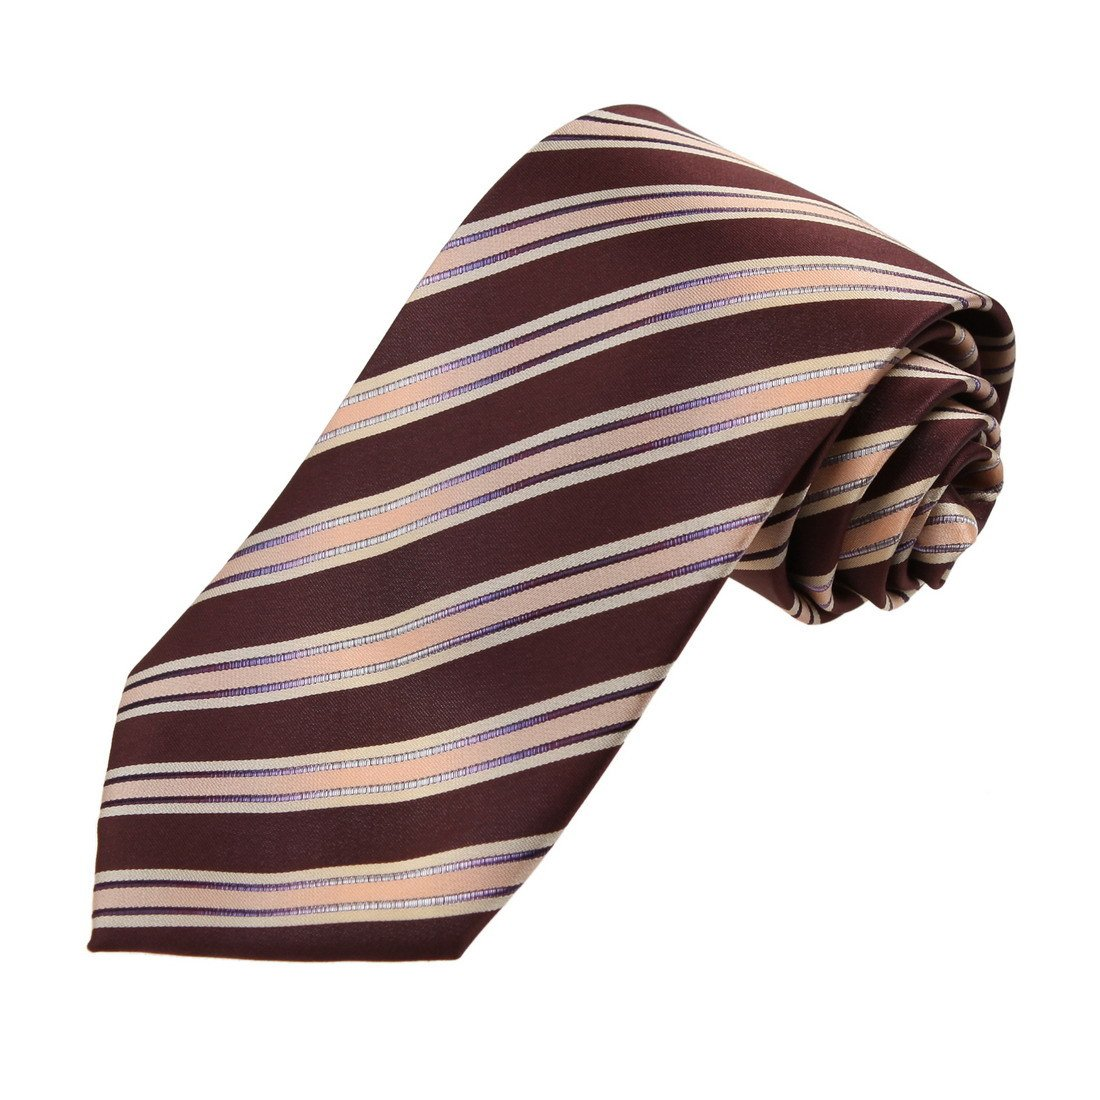 DAA7A07A Brown Khaki Stripes Microfiber Neck Tie Elegant For Dad Neckwear By Dan Smith